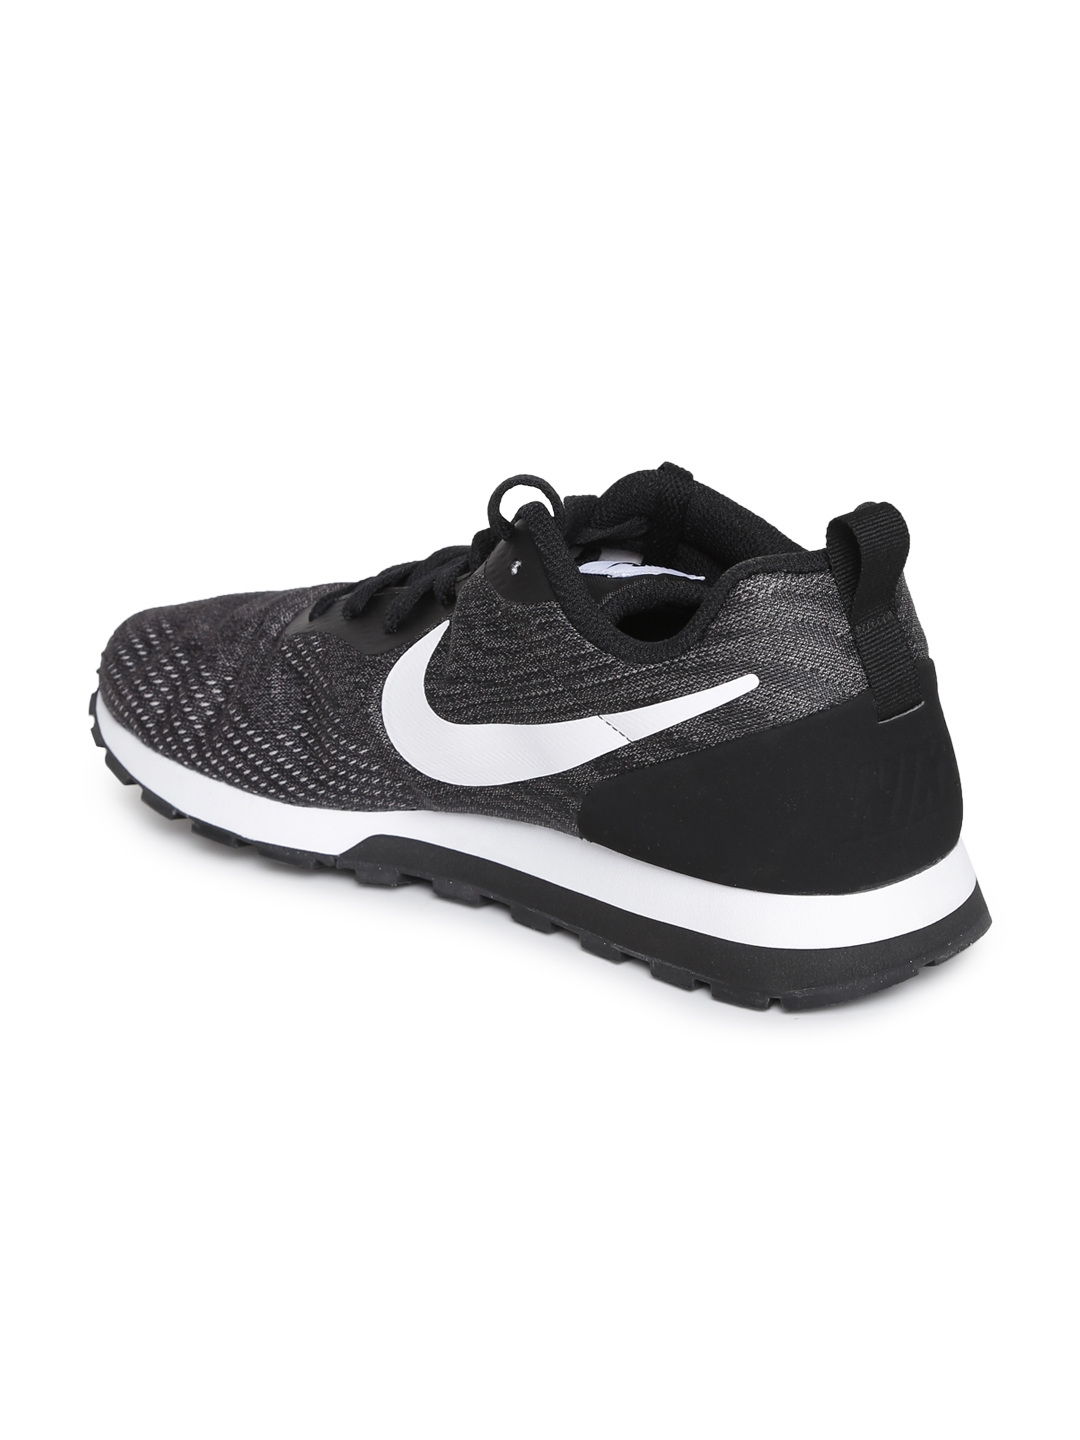 best cheap 9702f 82f0c 11513322354090-Nike-Men-Casual-Shoes-1901513322354013-2.jpg